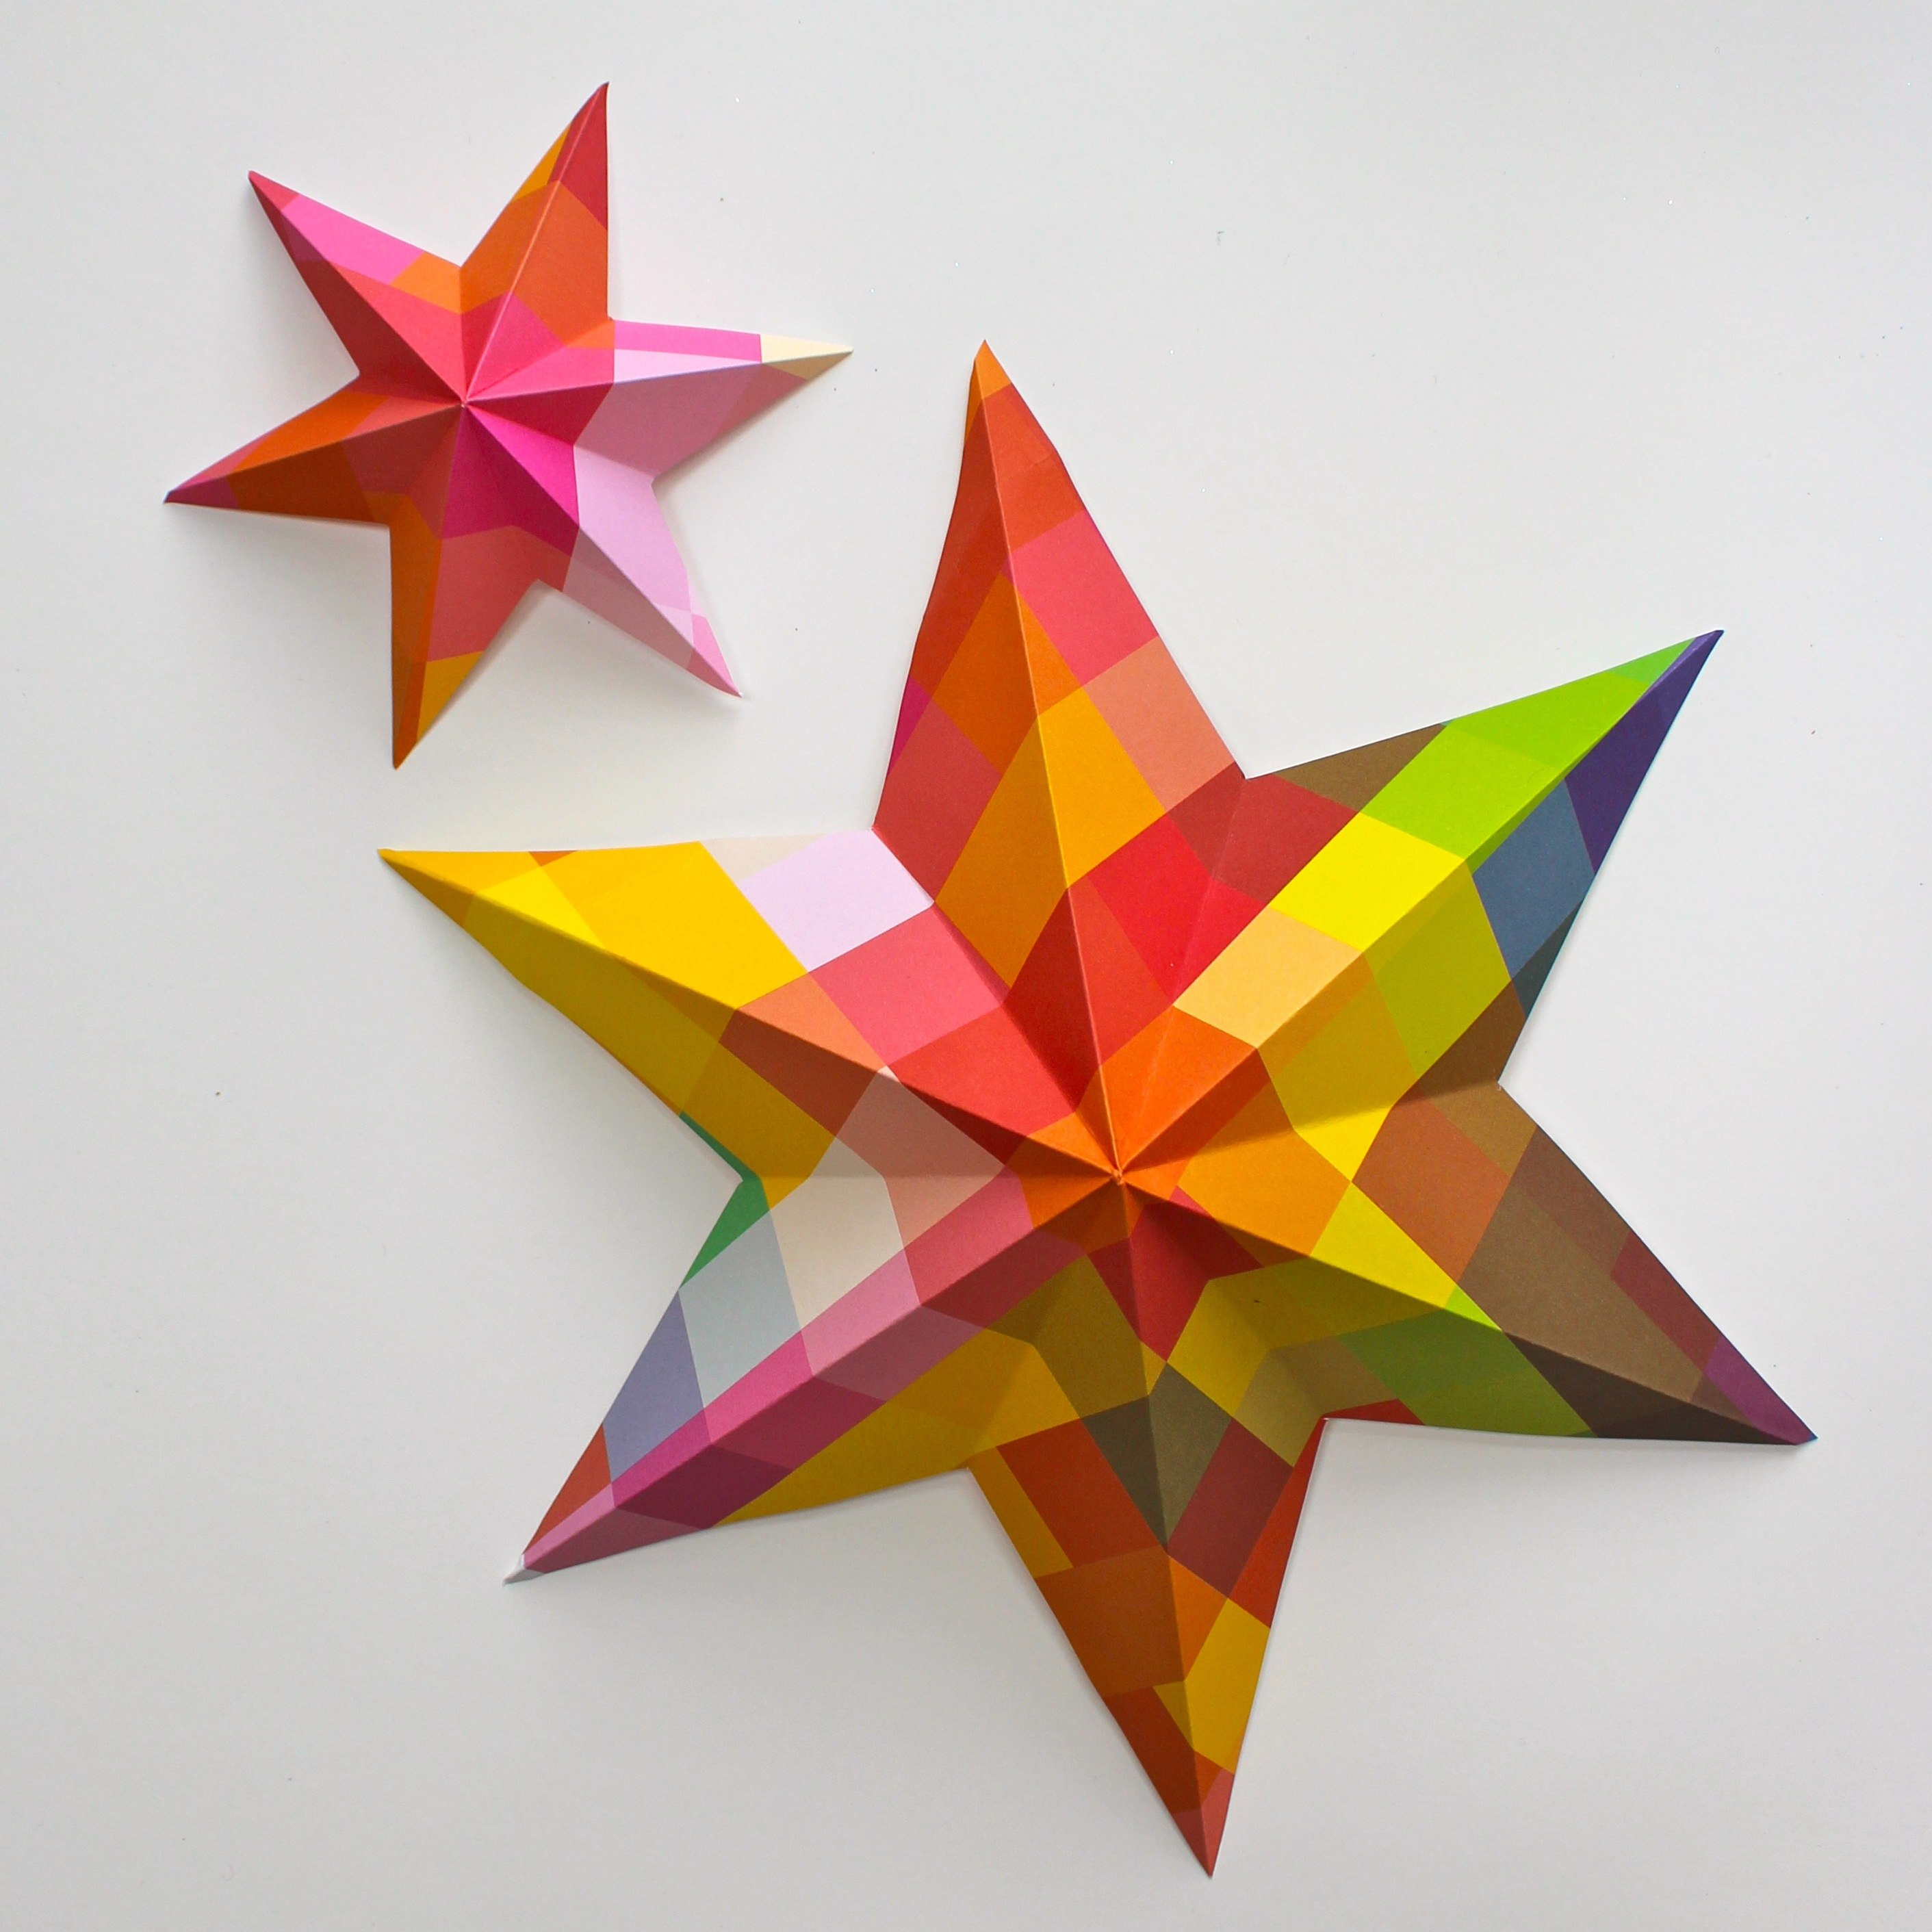 diy paper art projects - learn how to make 3d paper stars [video